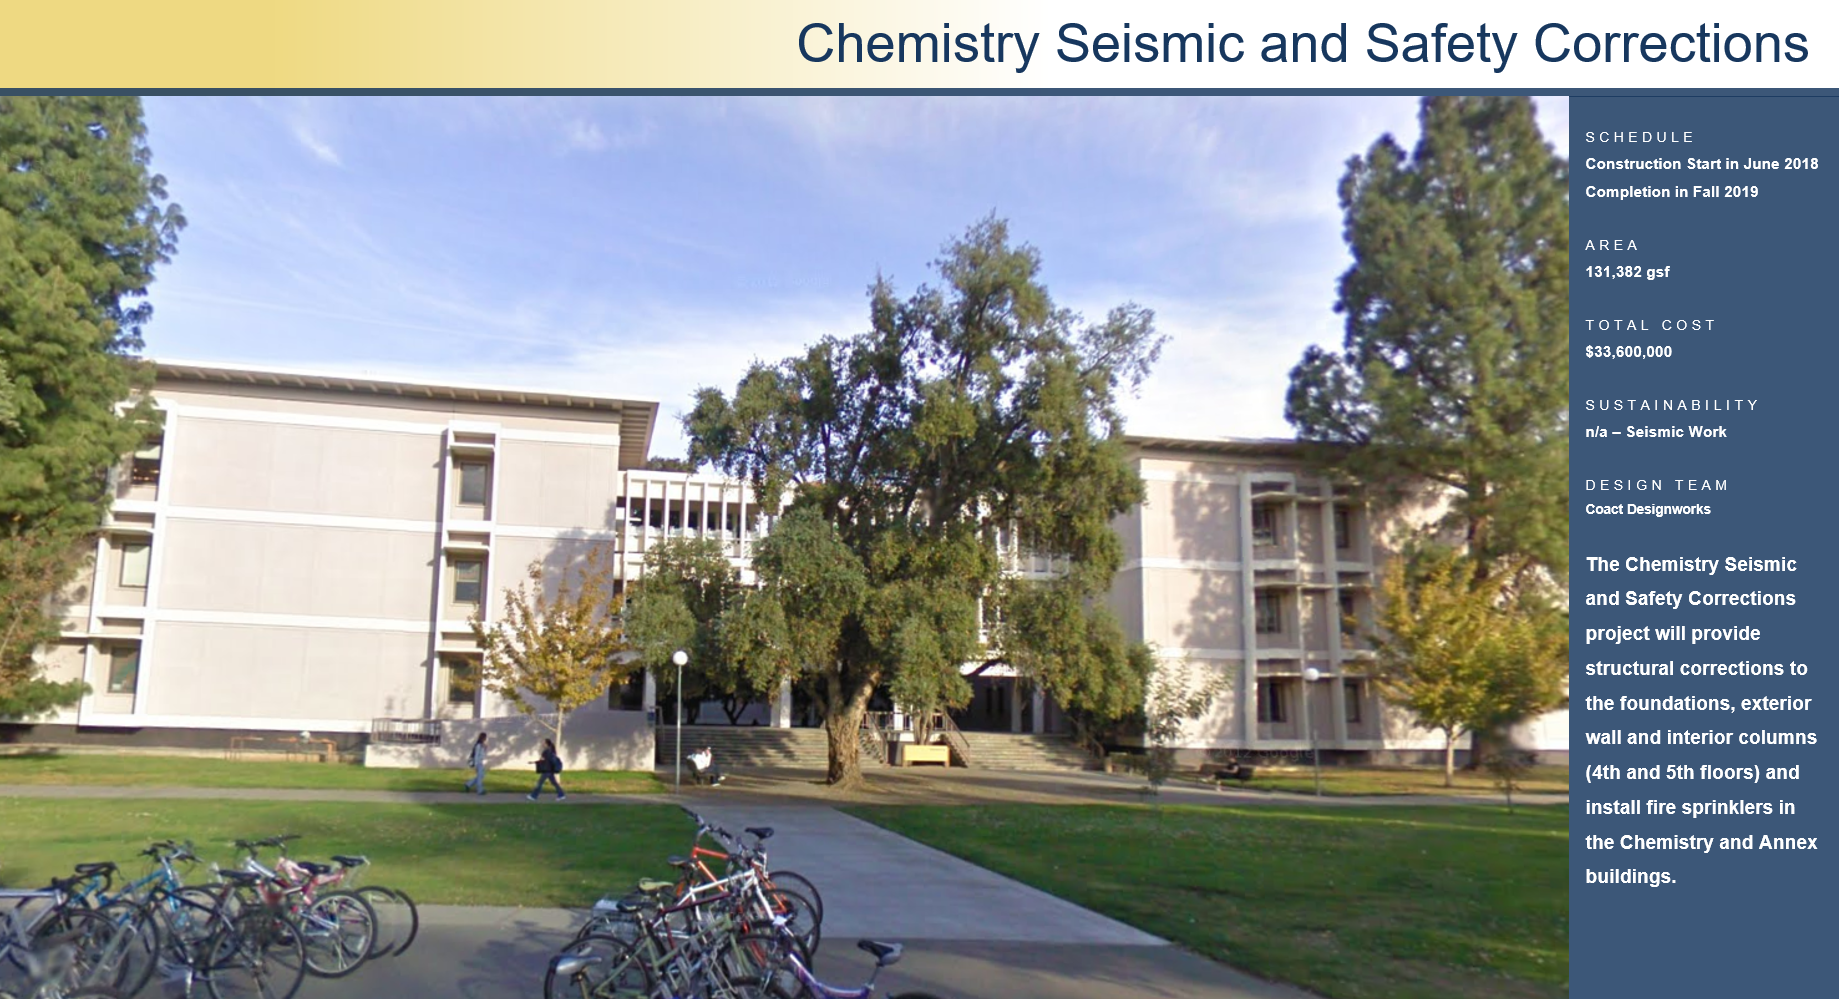 Chemistry Seismic and Safety Corrections